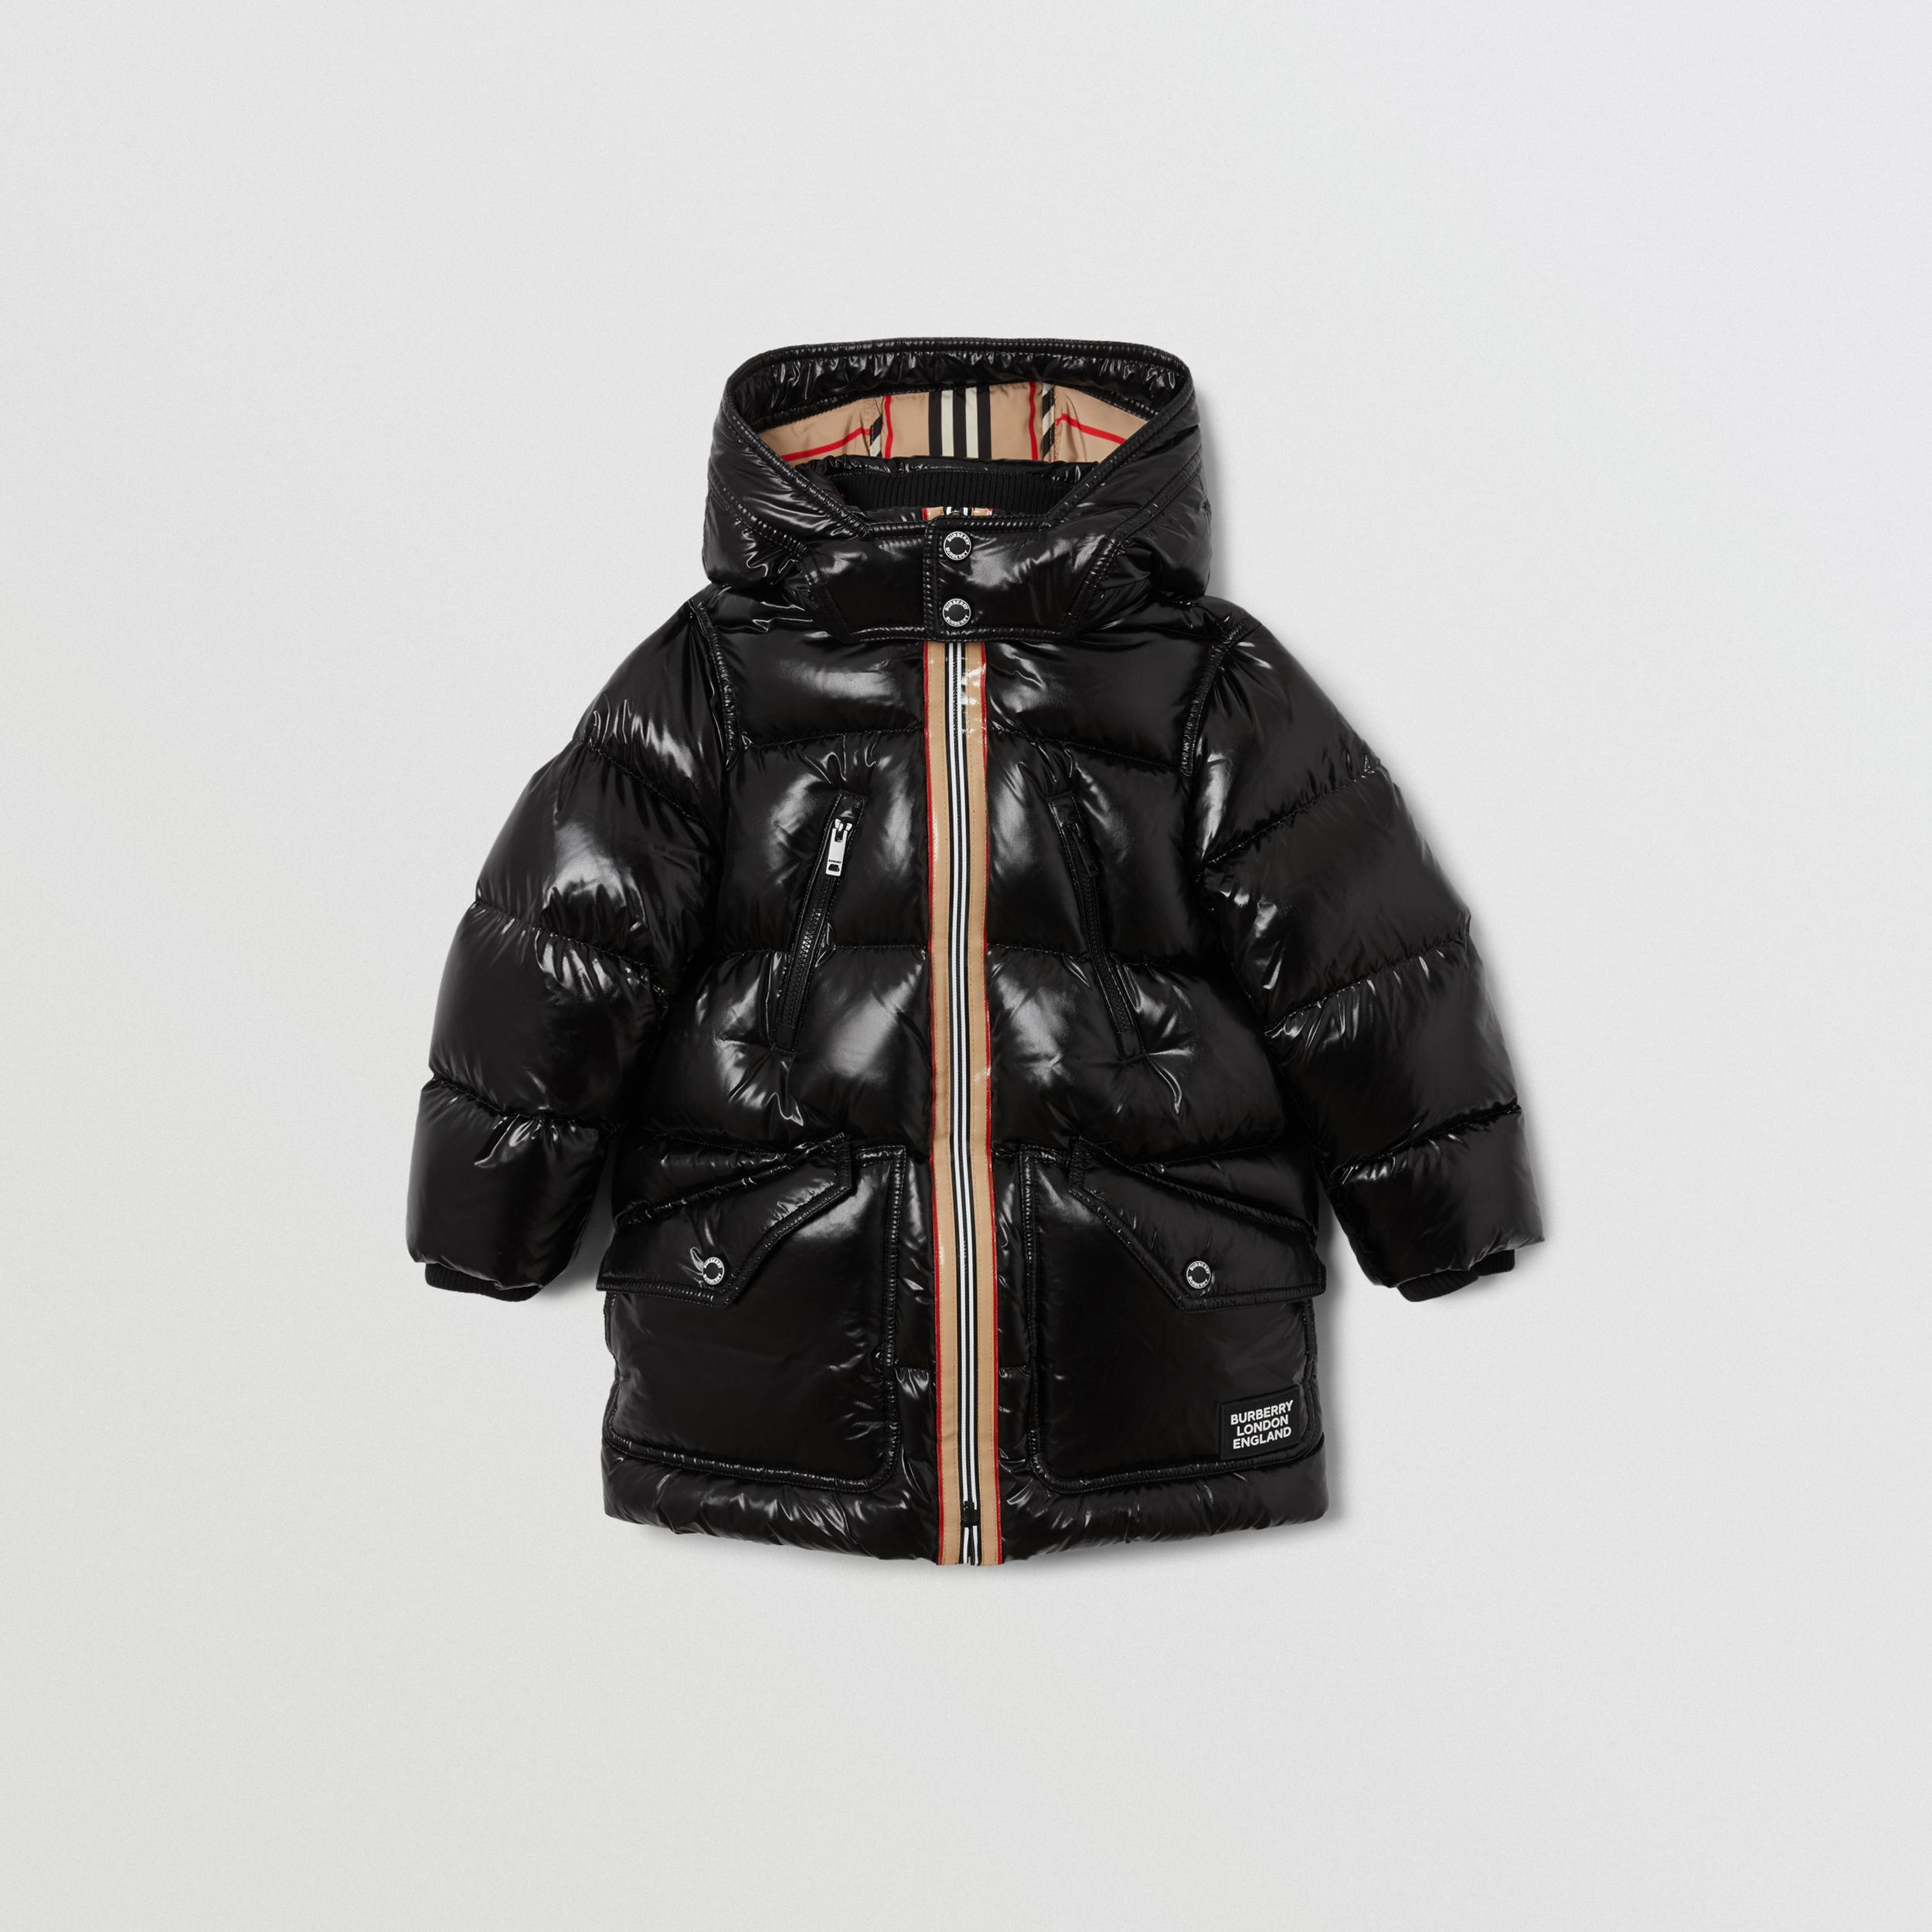 Icon Stripe Trim Hooded Puffer Coat in Black | Burberry Canada - 1